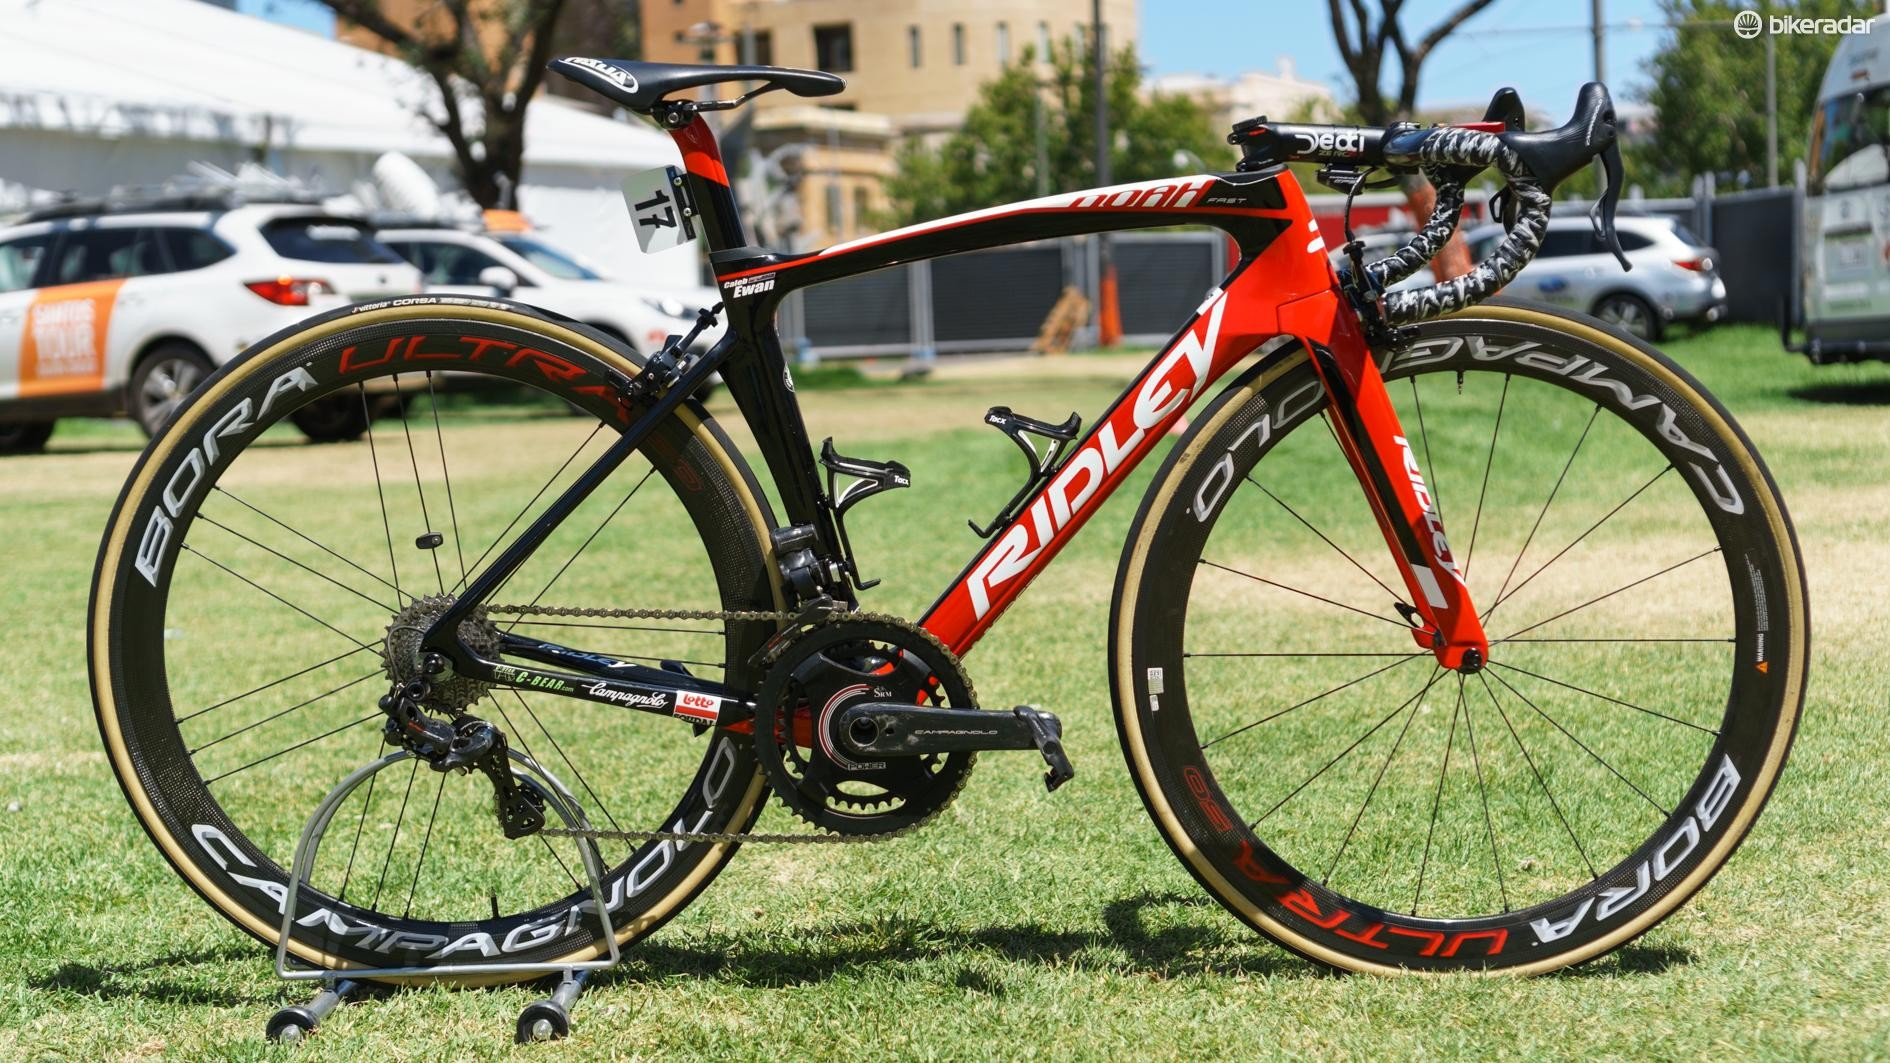 We saw the new groupset on Caleb Ewan's Ridley Noah